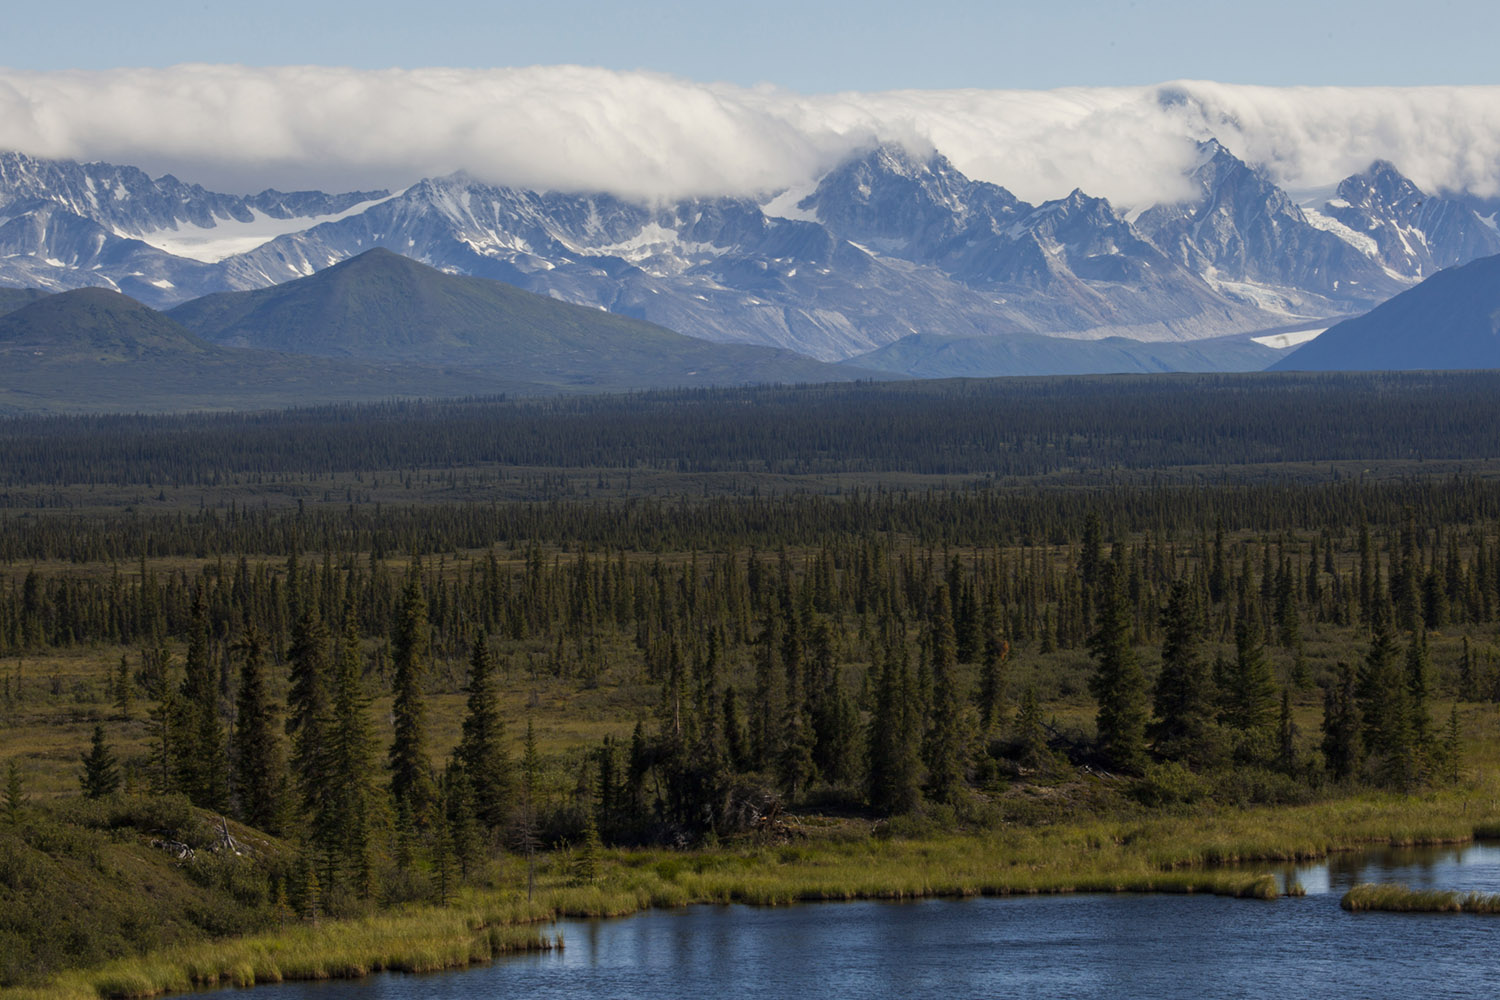 Mighty Mountains of Alaska (Wrangell & St. Elias Wilderness) (c) Bart Coolen 2018